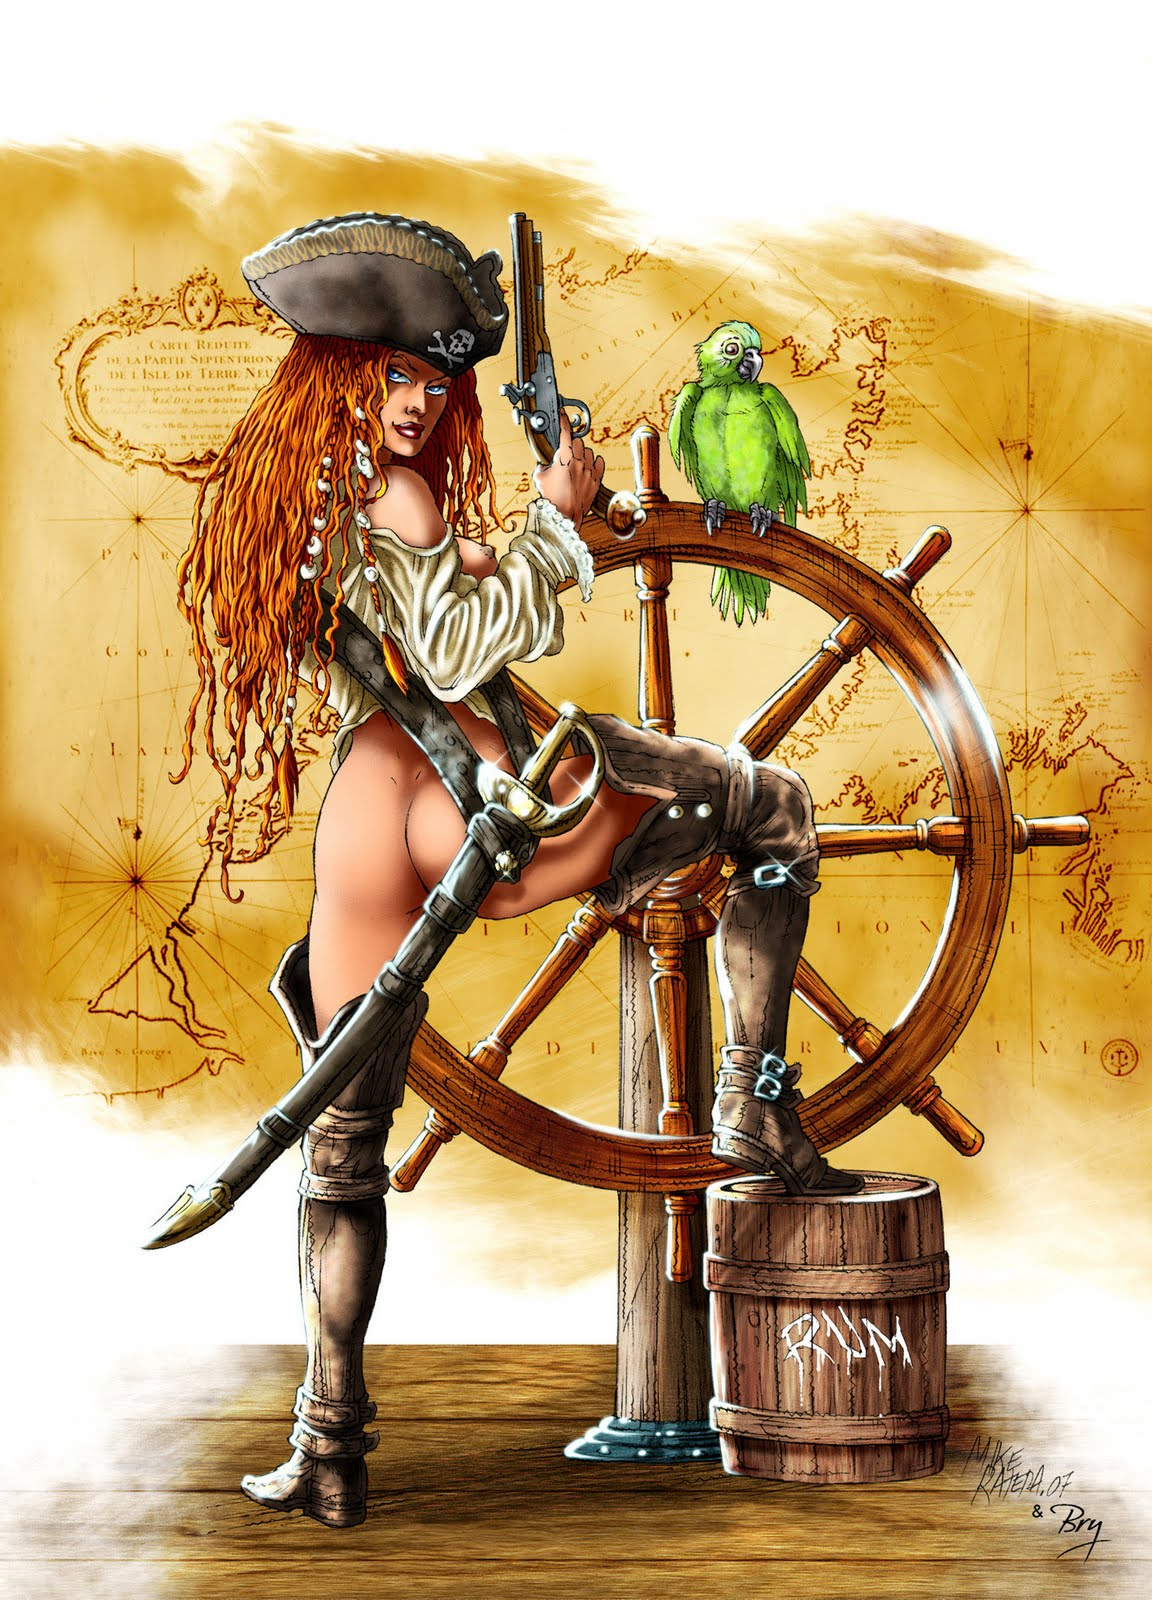 Nude pirate women fantasy art hentai tubes